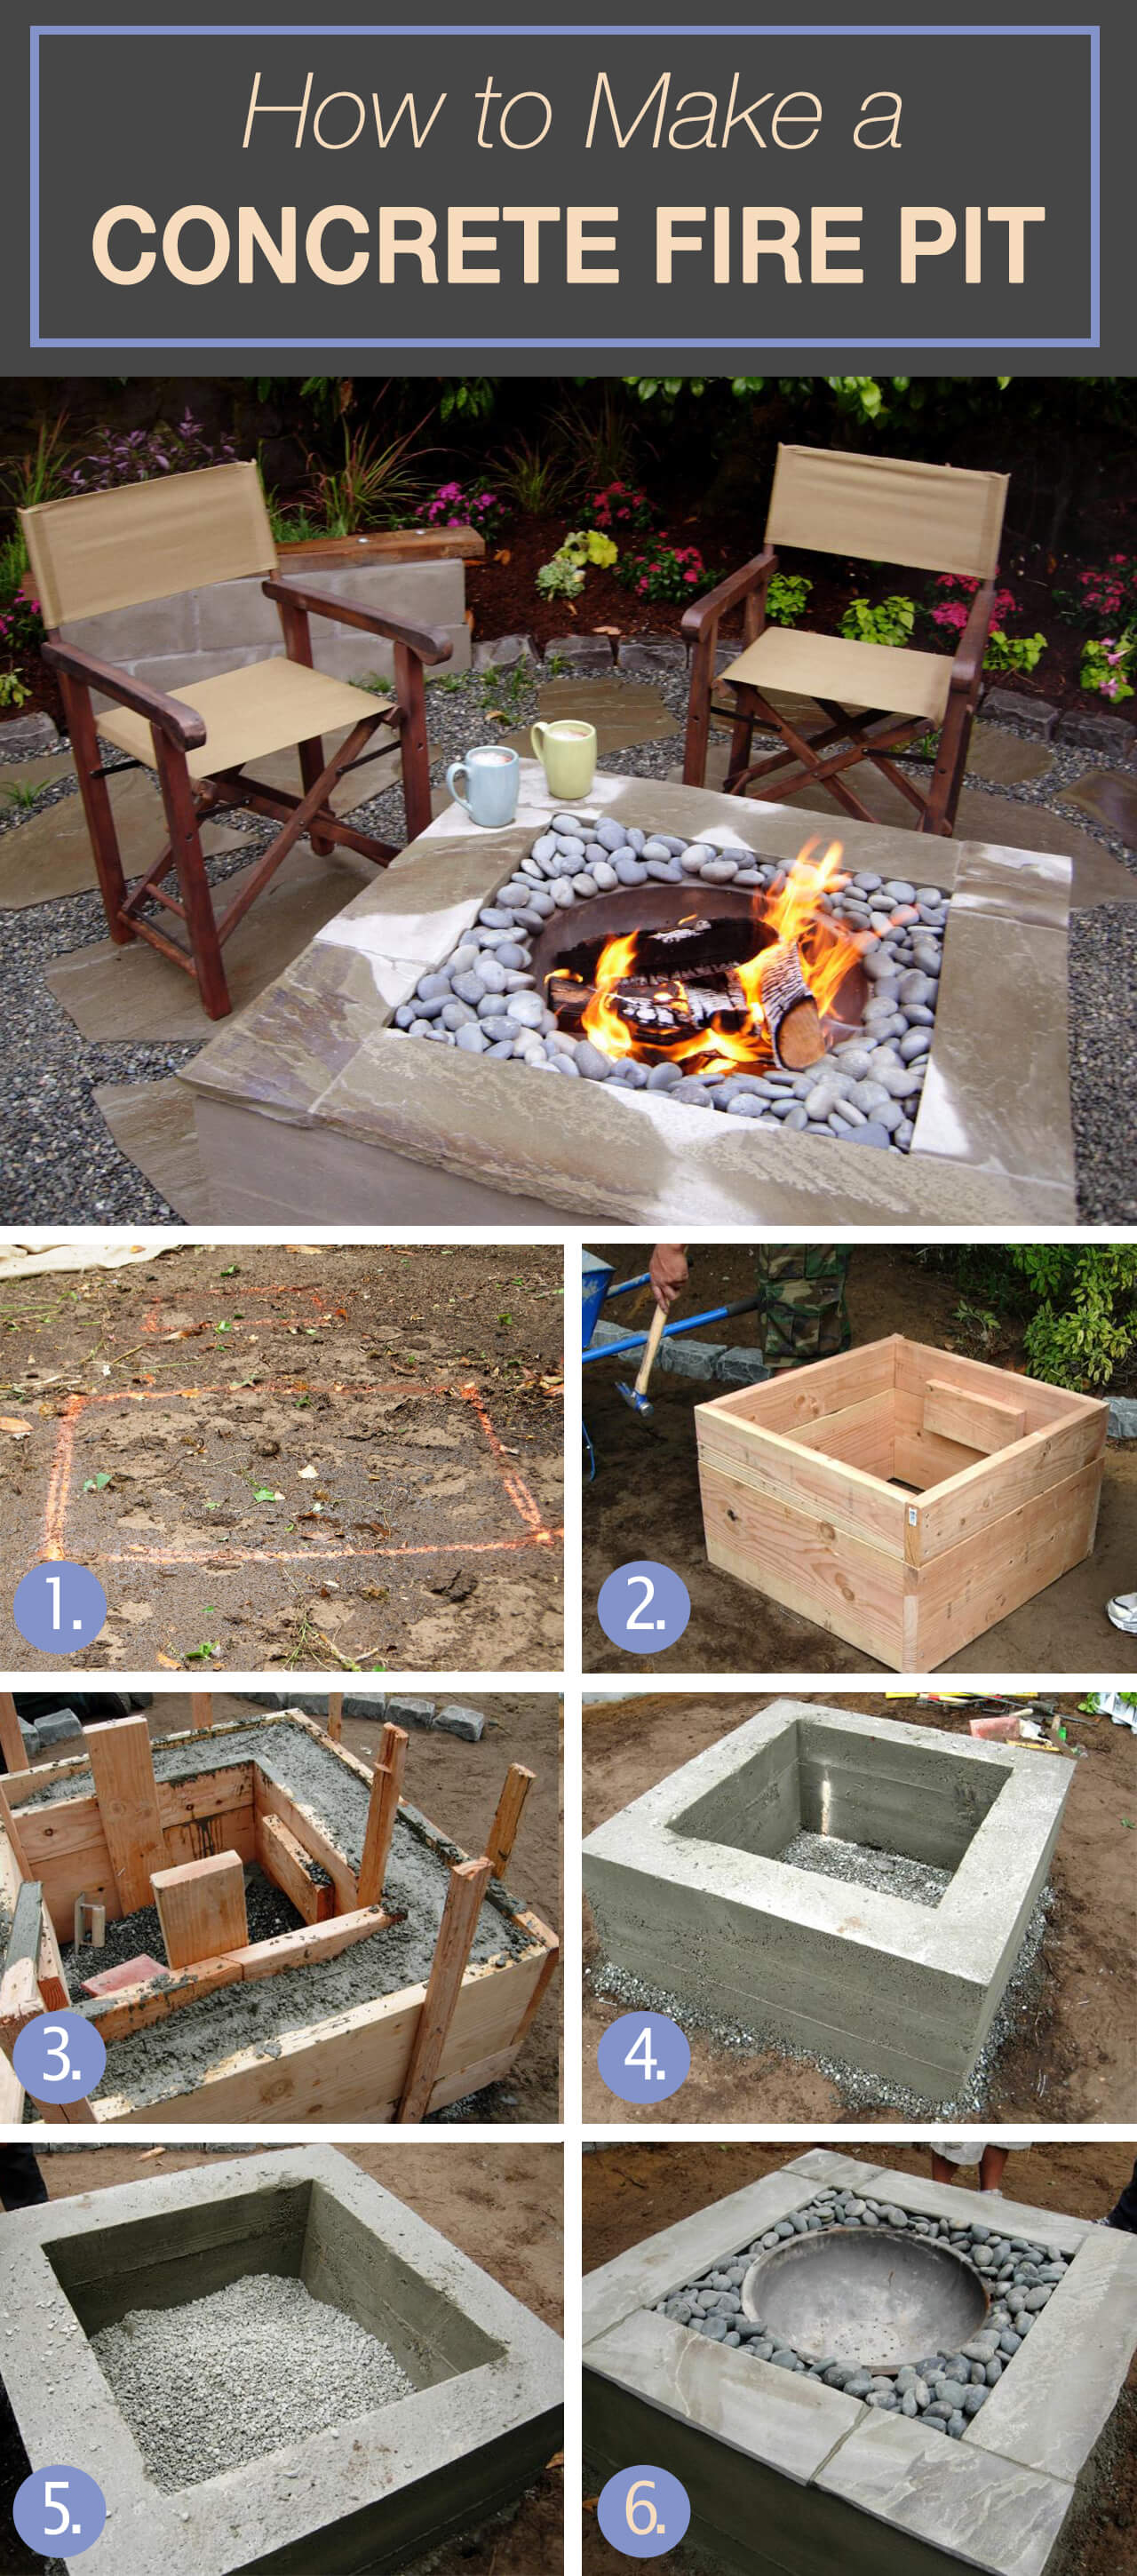 outdoor DIY fire pit ideas designs how to build the handy mano manomano square concrete